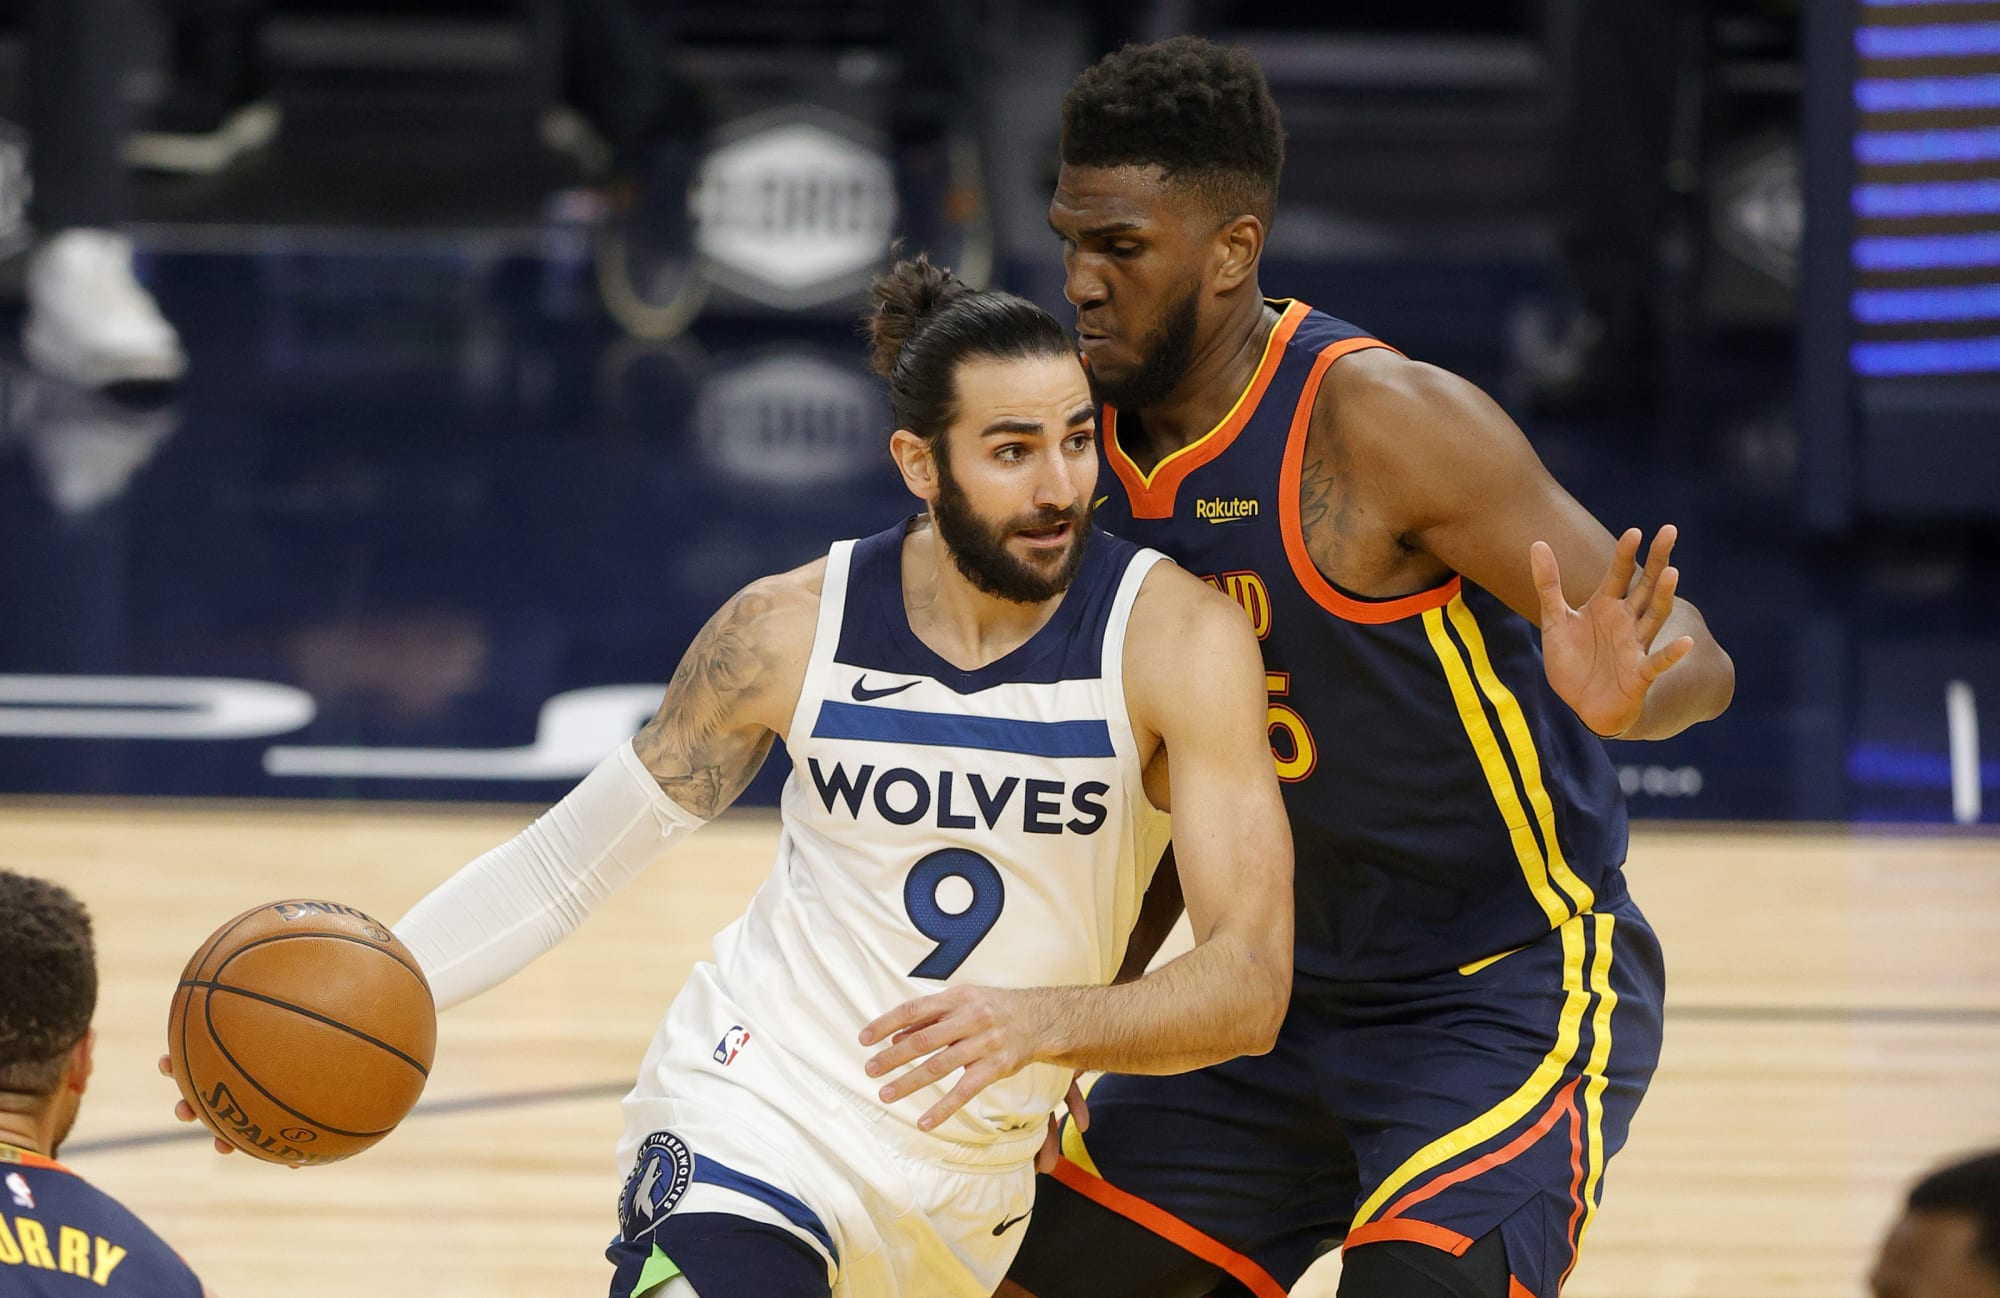 Previewing Minnesota Timberwolves at Golden State Warriors, Part II